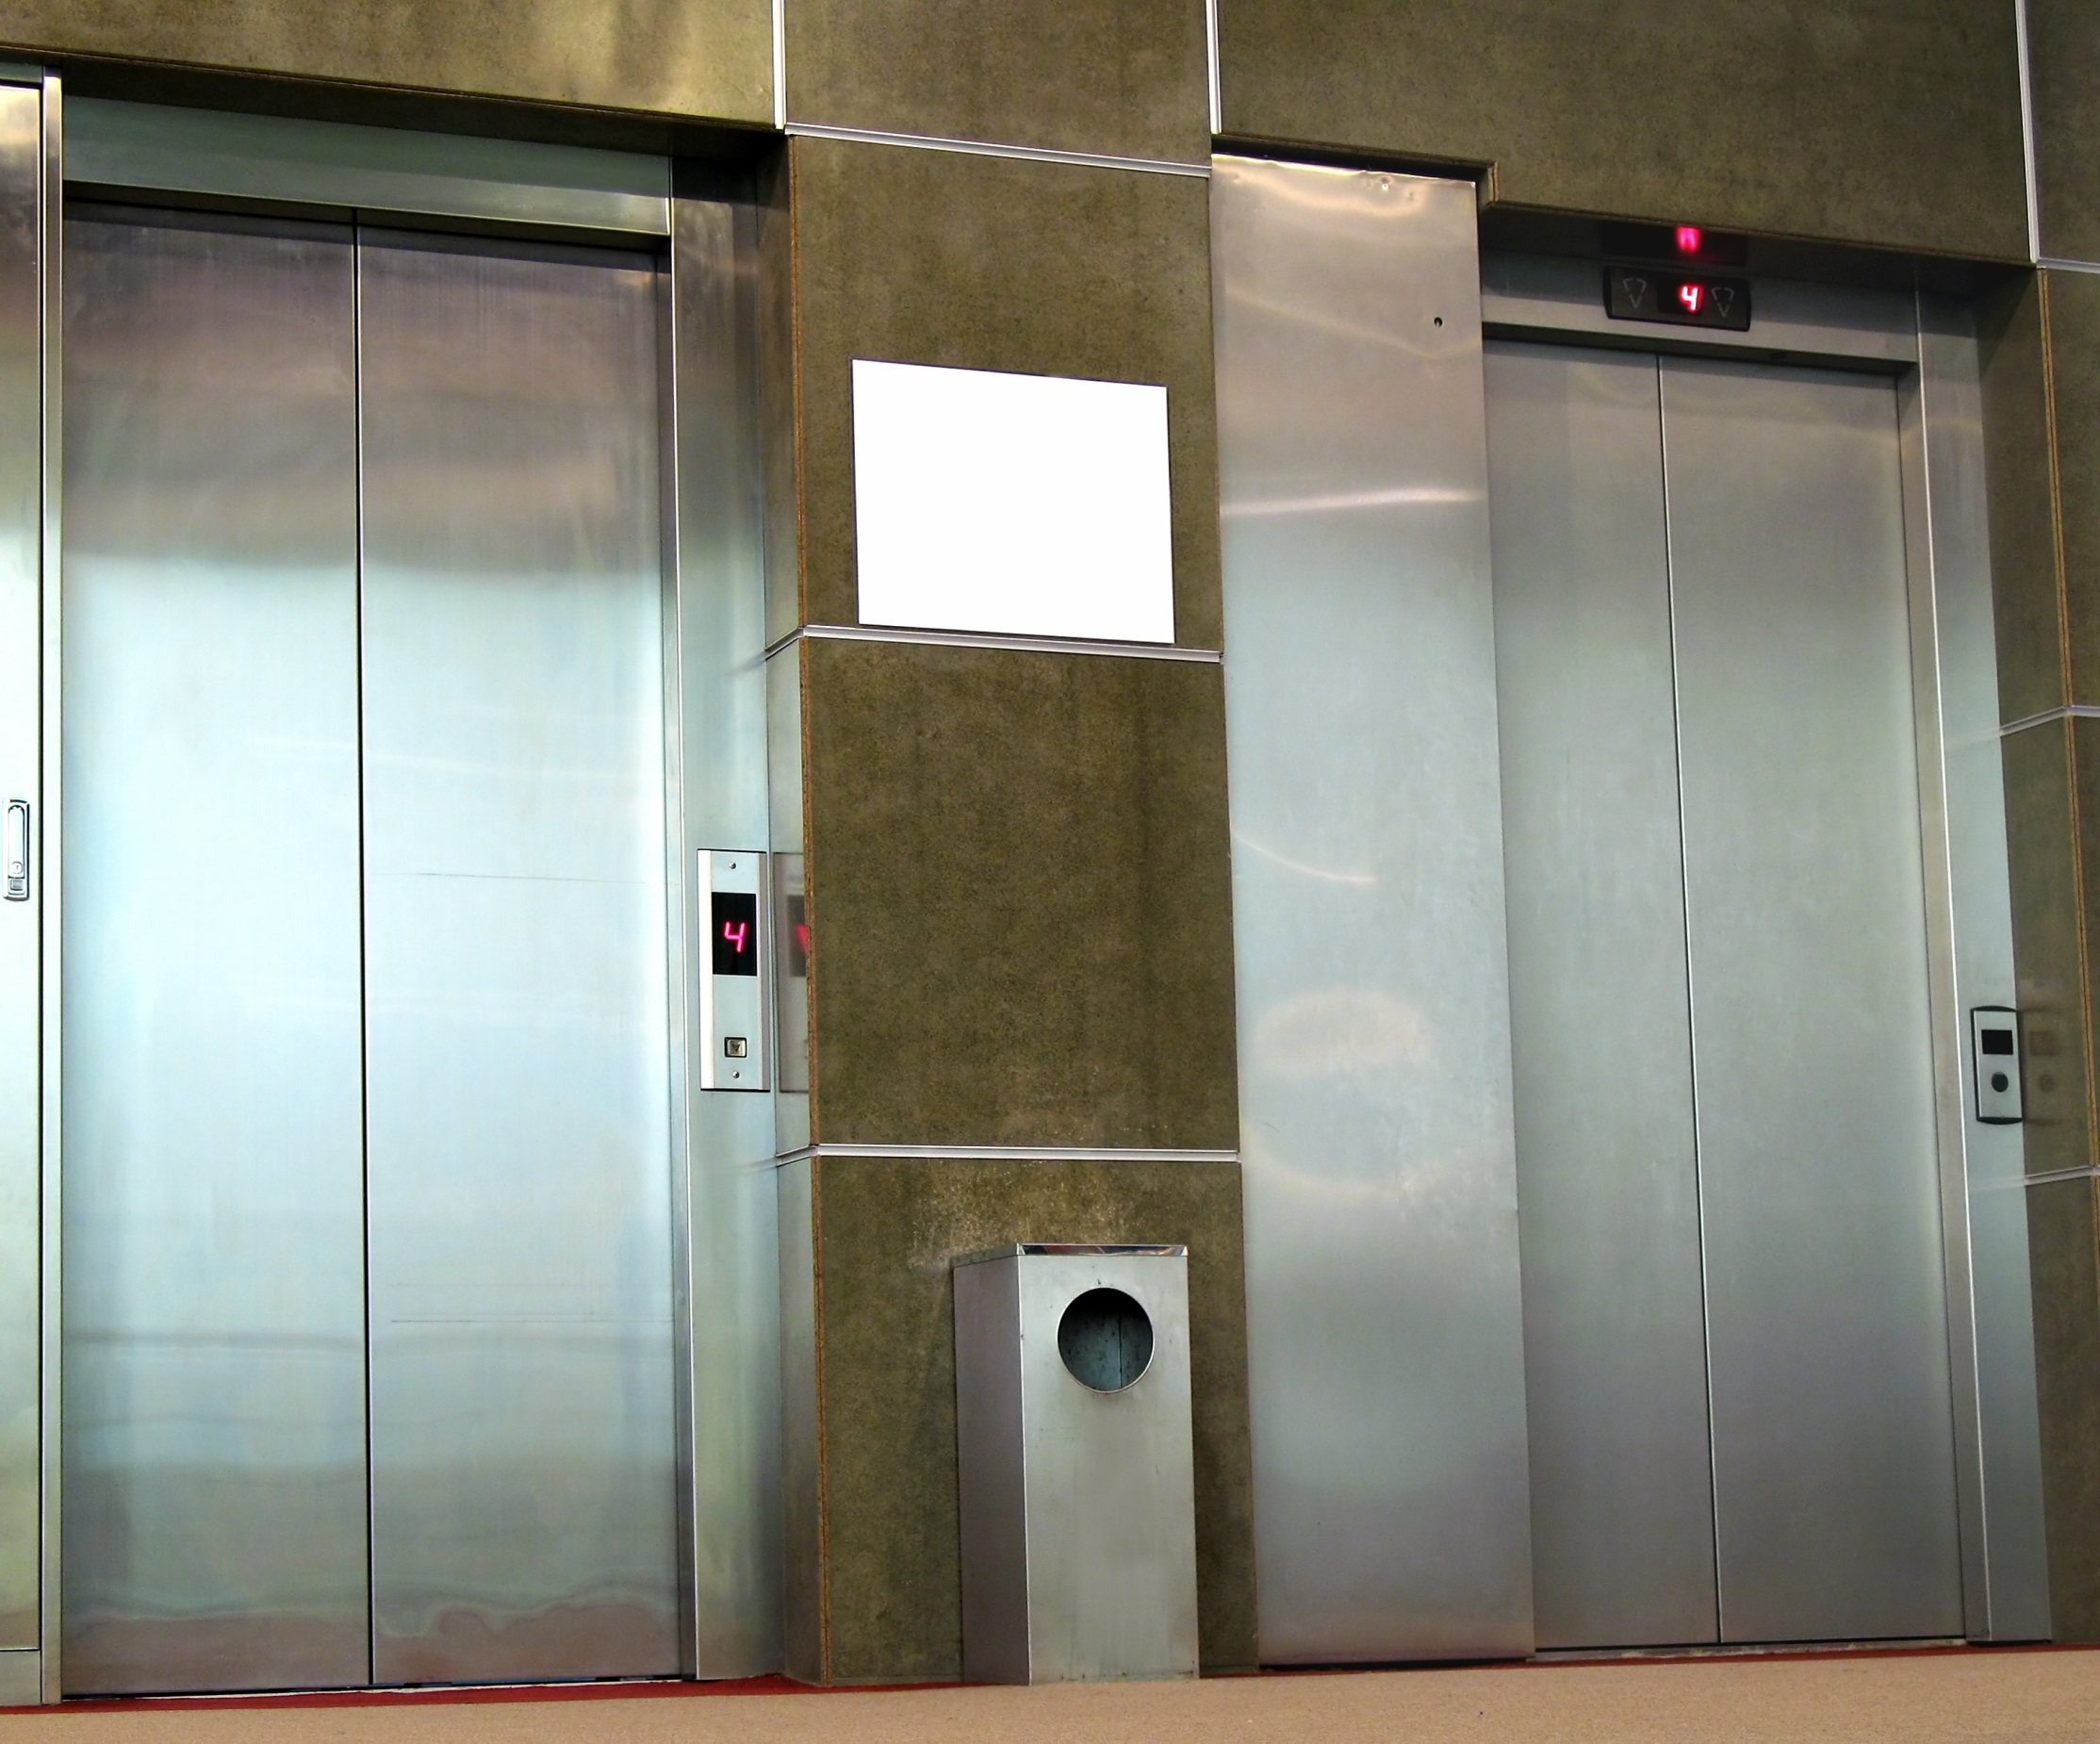 Stainless Steel Elevators : Fictional elevator faking it till i become life s